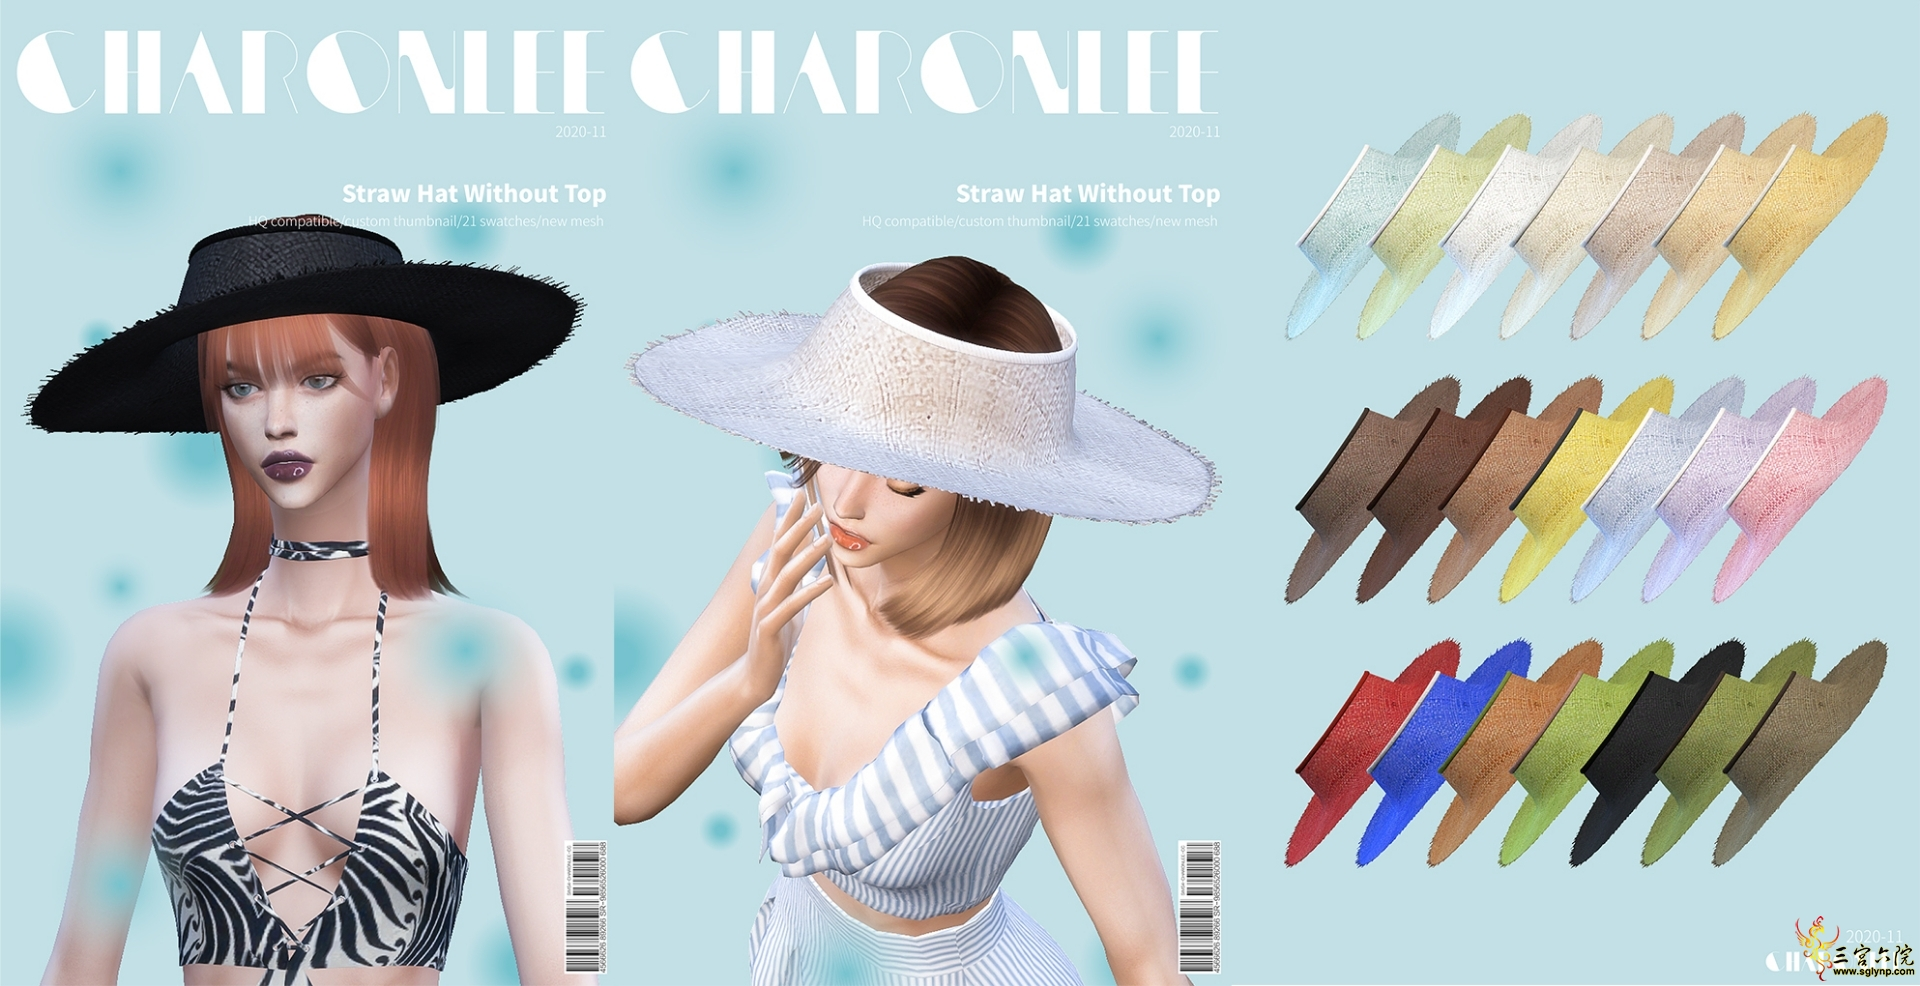 [CHARONLEE]2020-057-Straw Hat Without Top.jpg